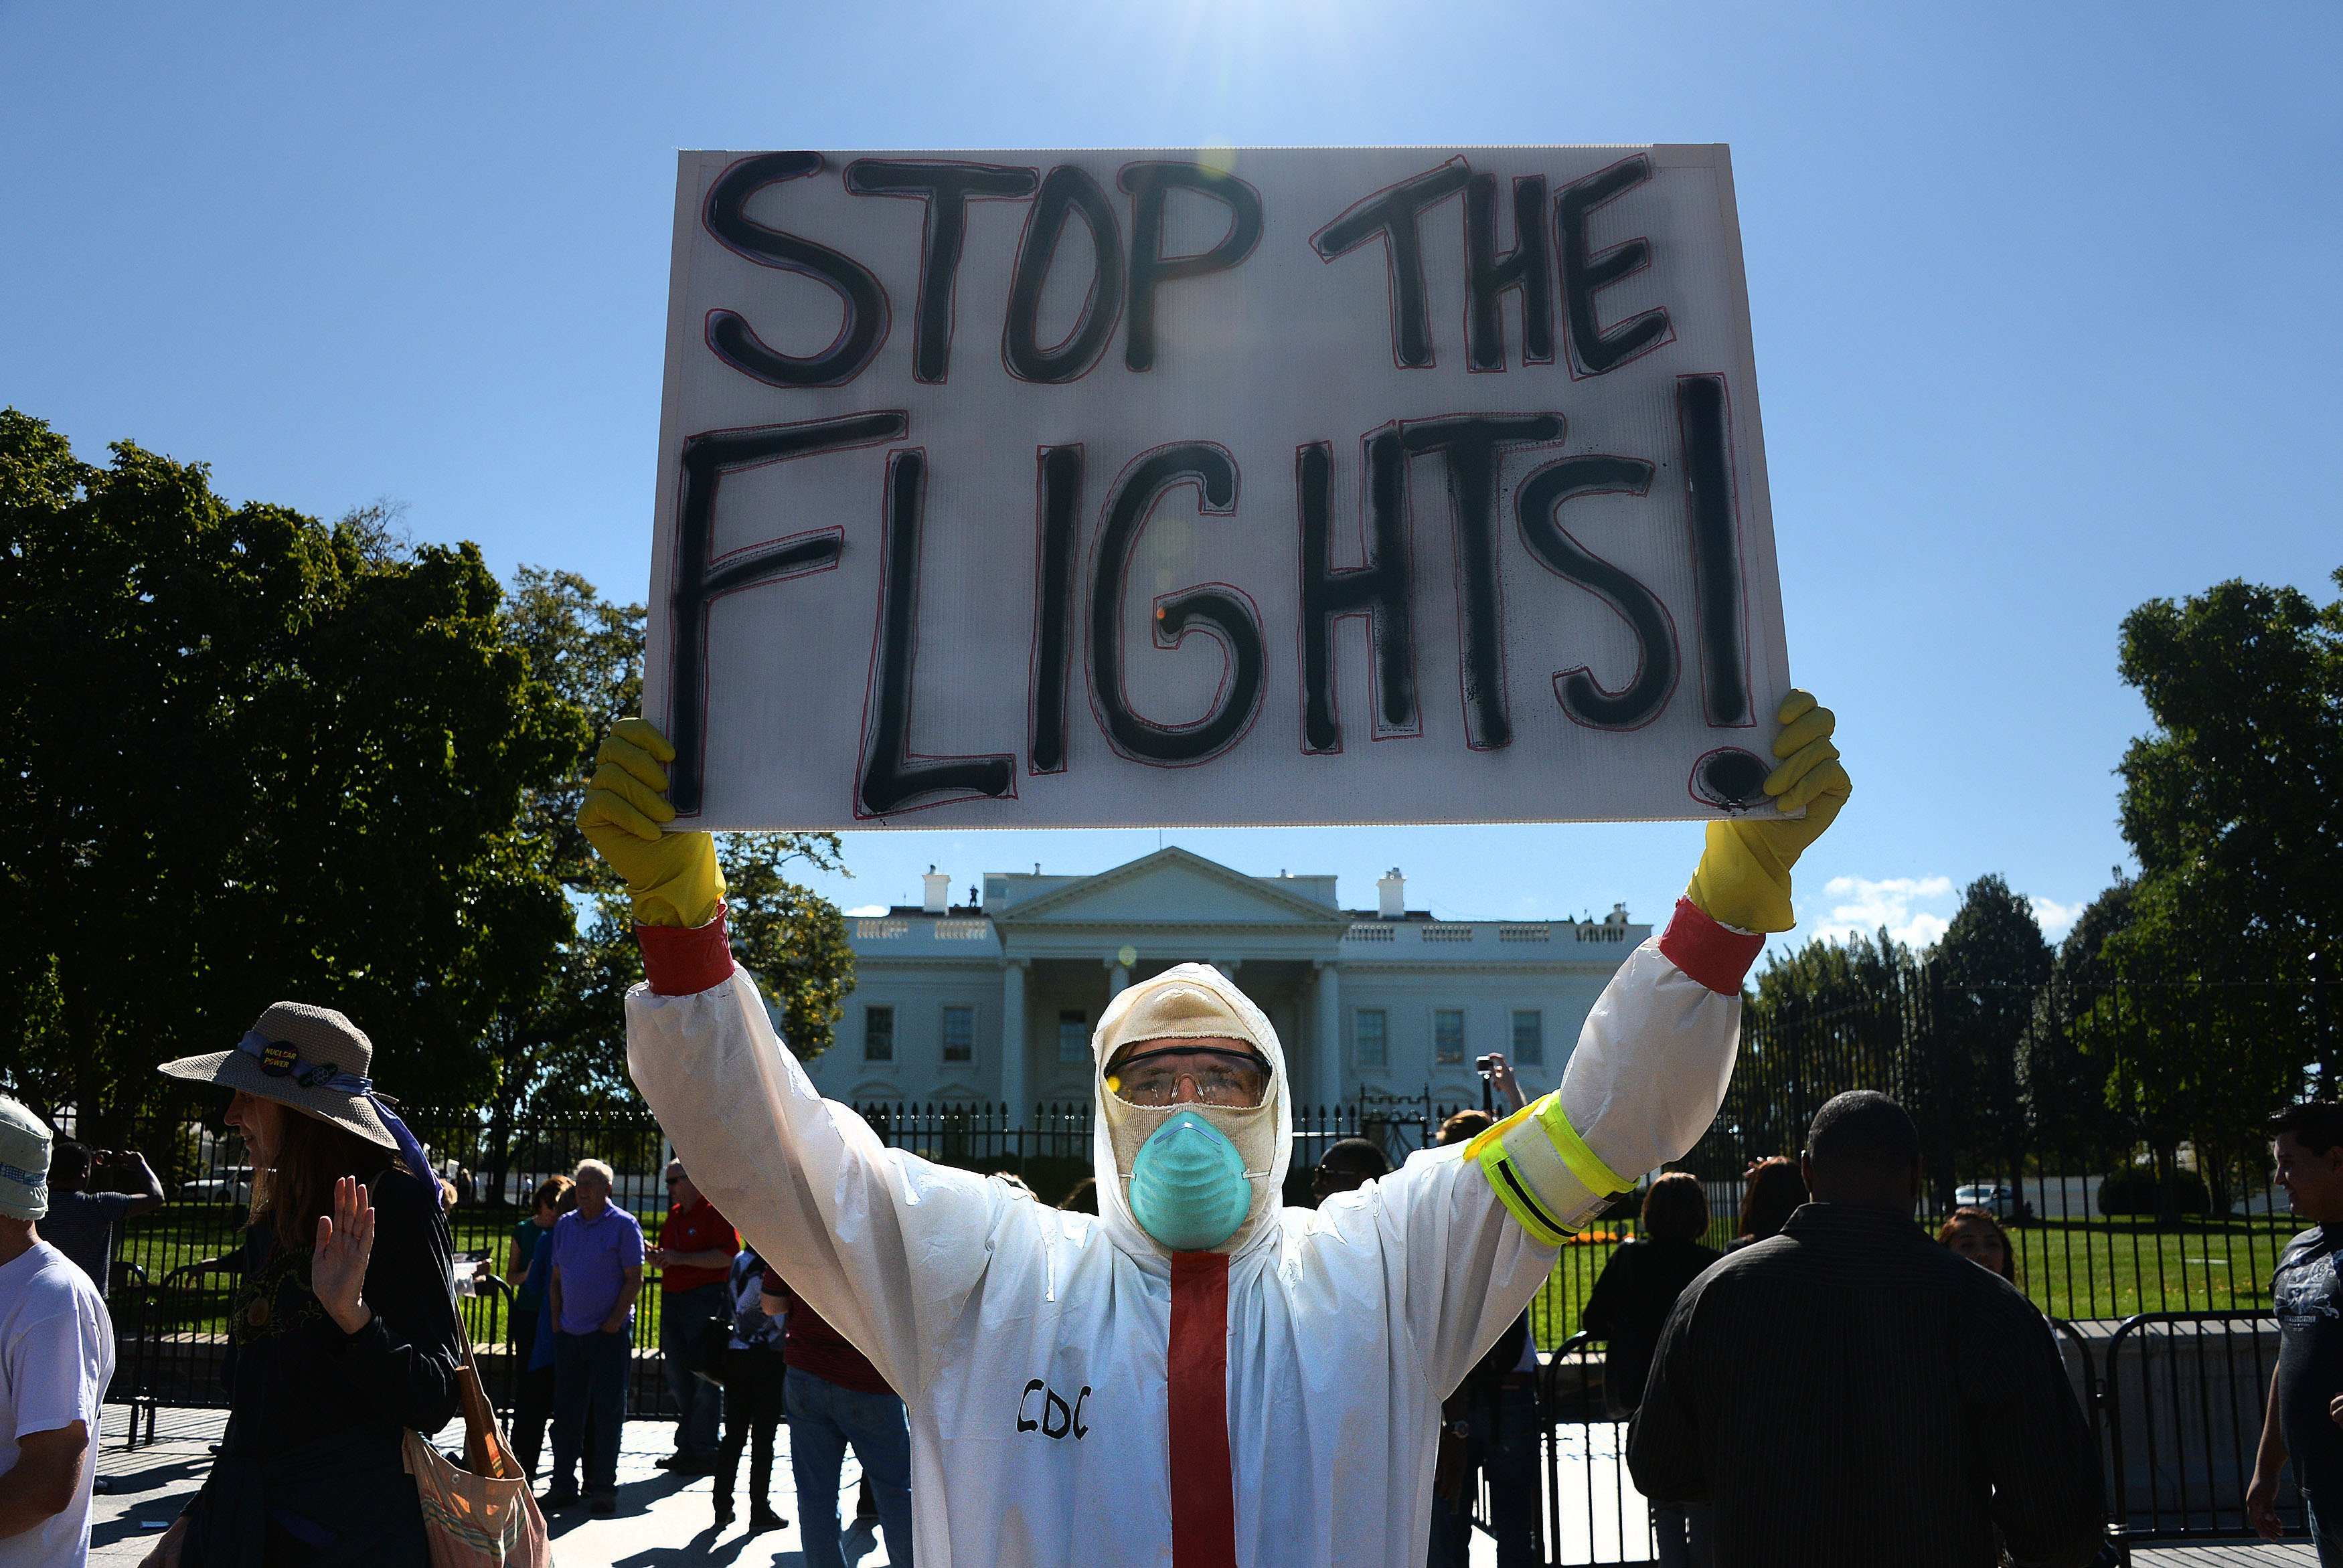 A protester stands outside the White House asking President Barack Obama to ban flights in effort to stop Ebola on Oct. 17, 2014 in Washington, DC.